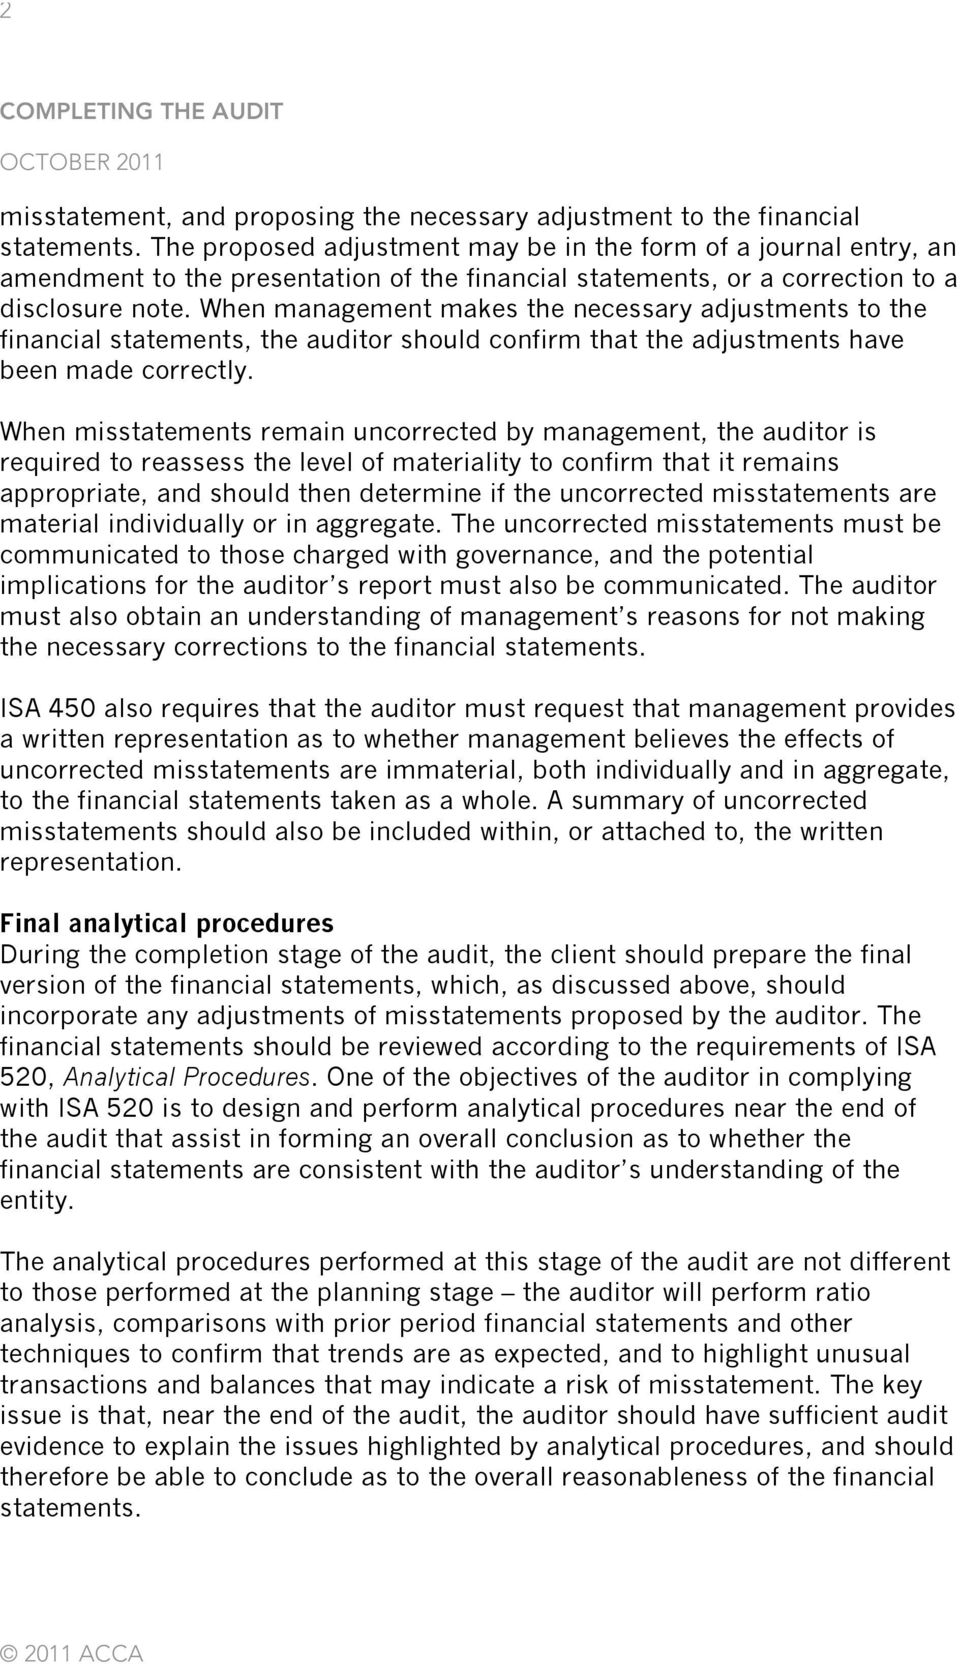 When management makes the necessary adjustments to the financial statements, the auditor should confirm that the adjustments have been made correctly.